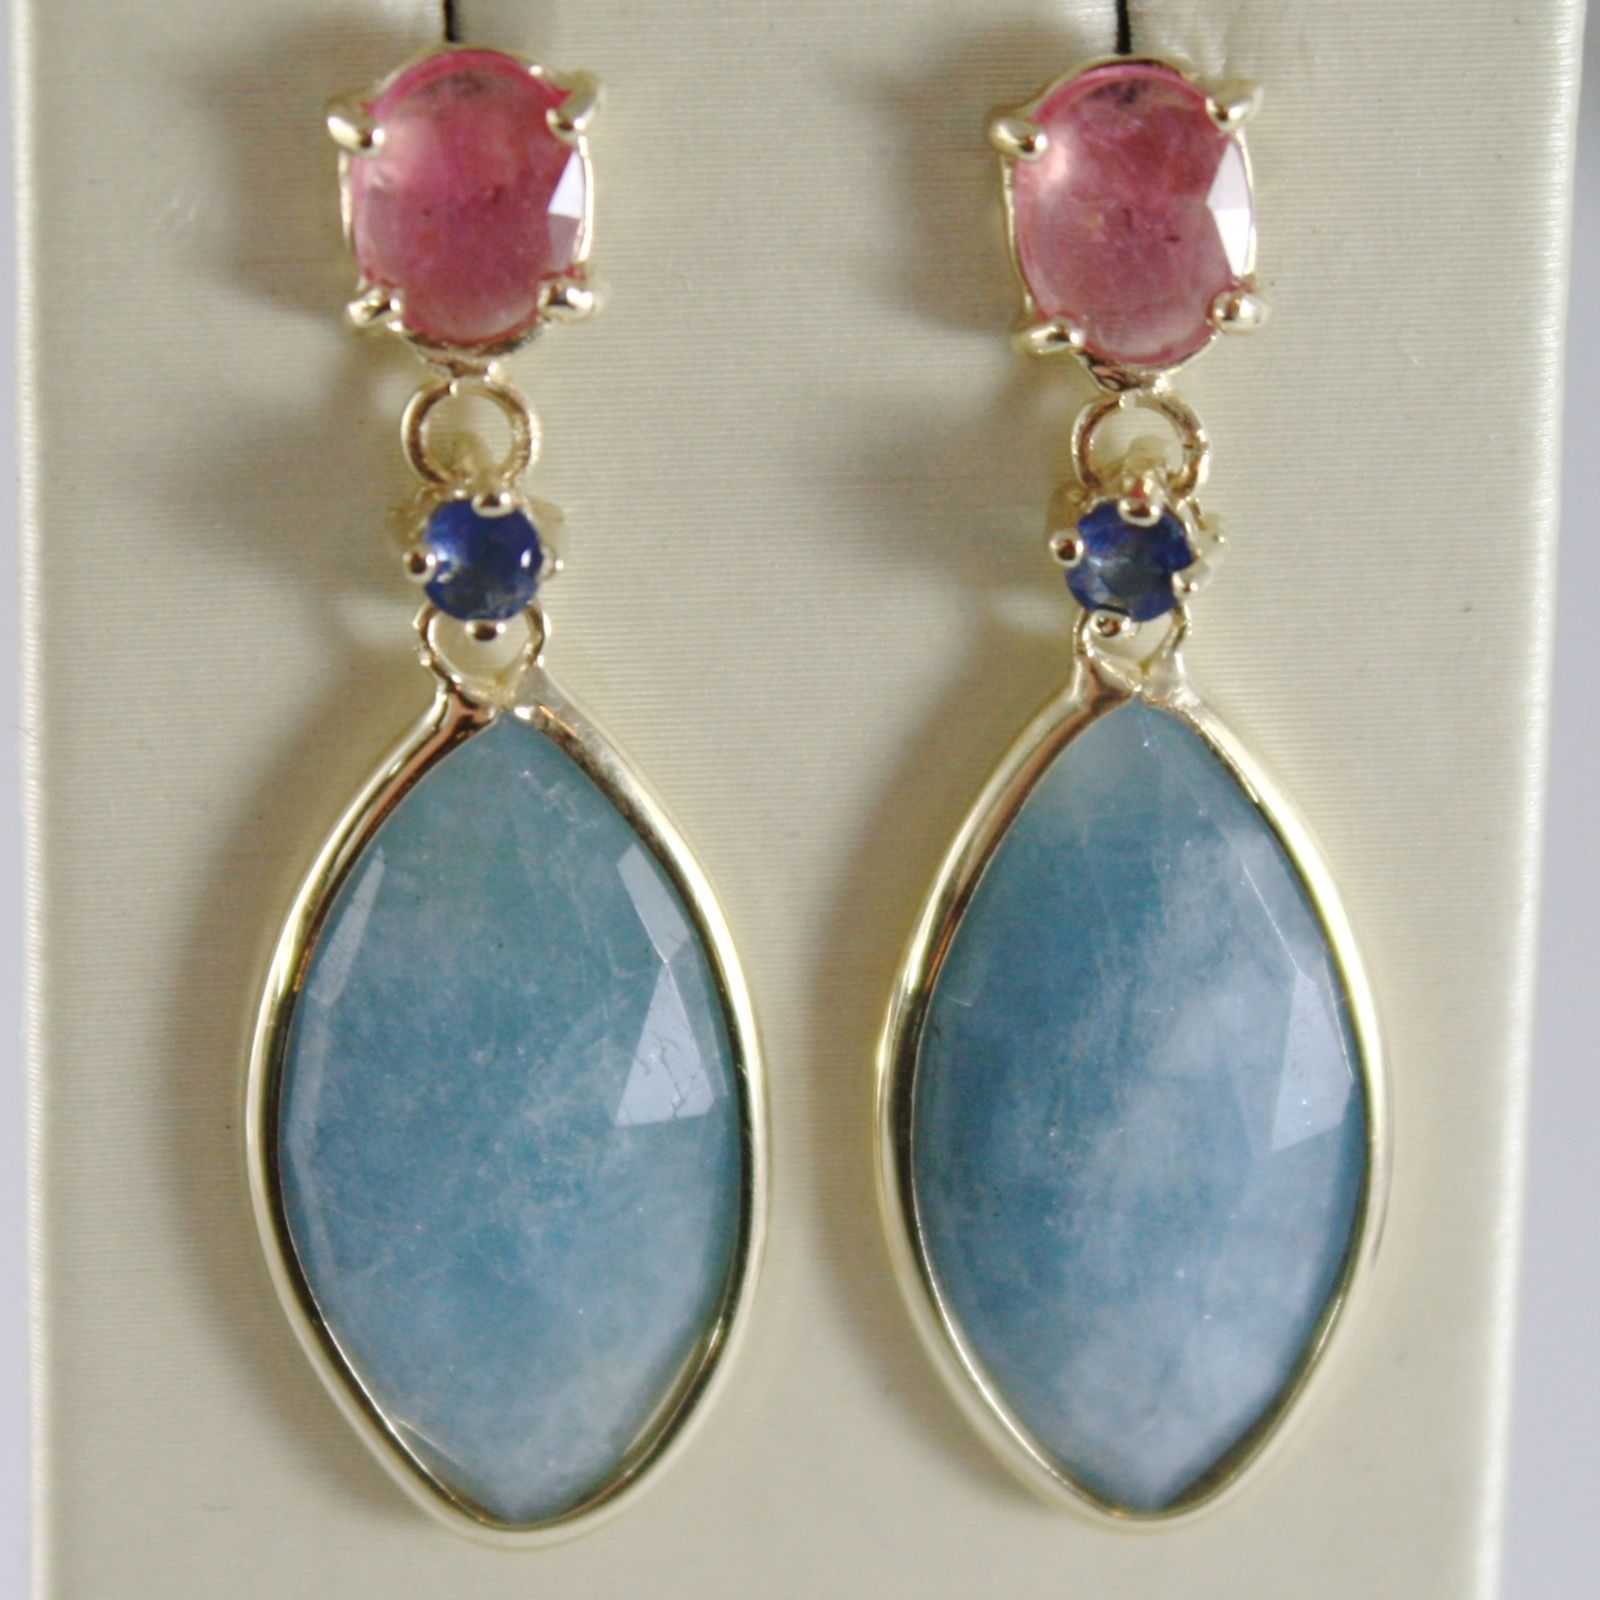 YELLOW GOLD EARRINGS 9K HANGING 3.5 CM AQUAMARINE 8.5 CARAT, RUBY, SAPPHIRE